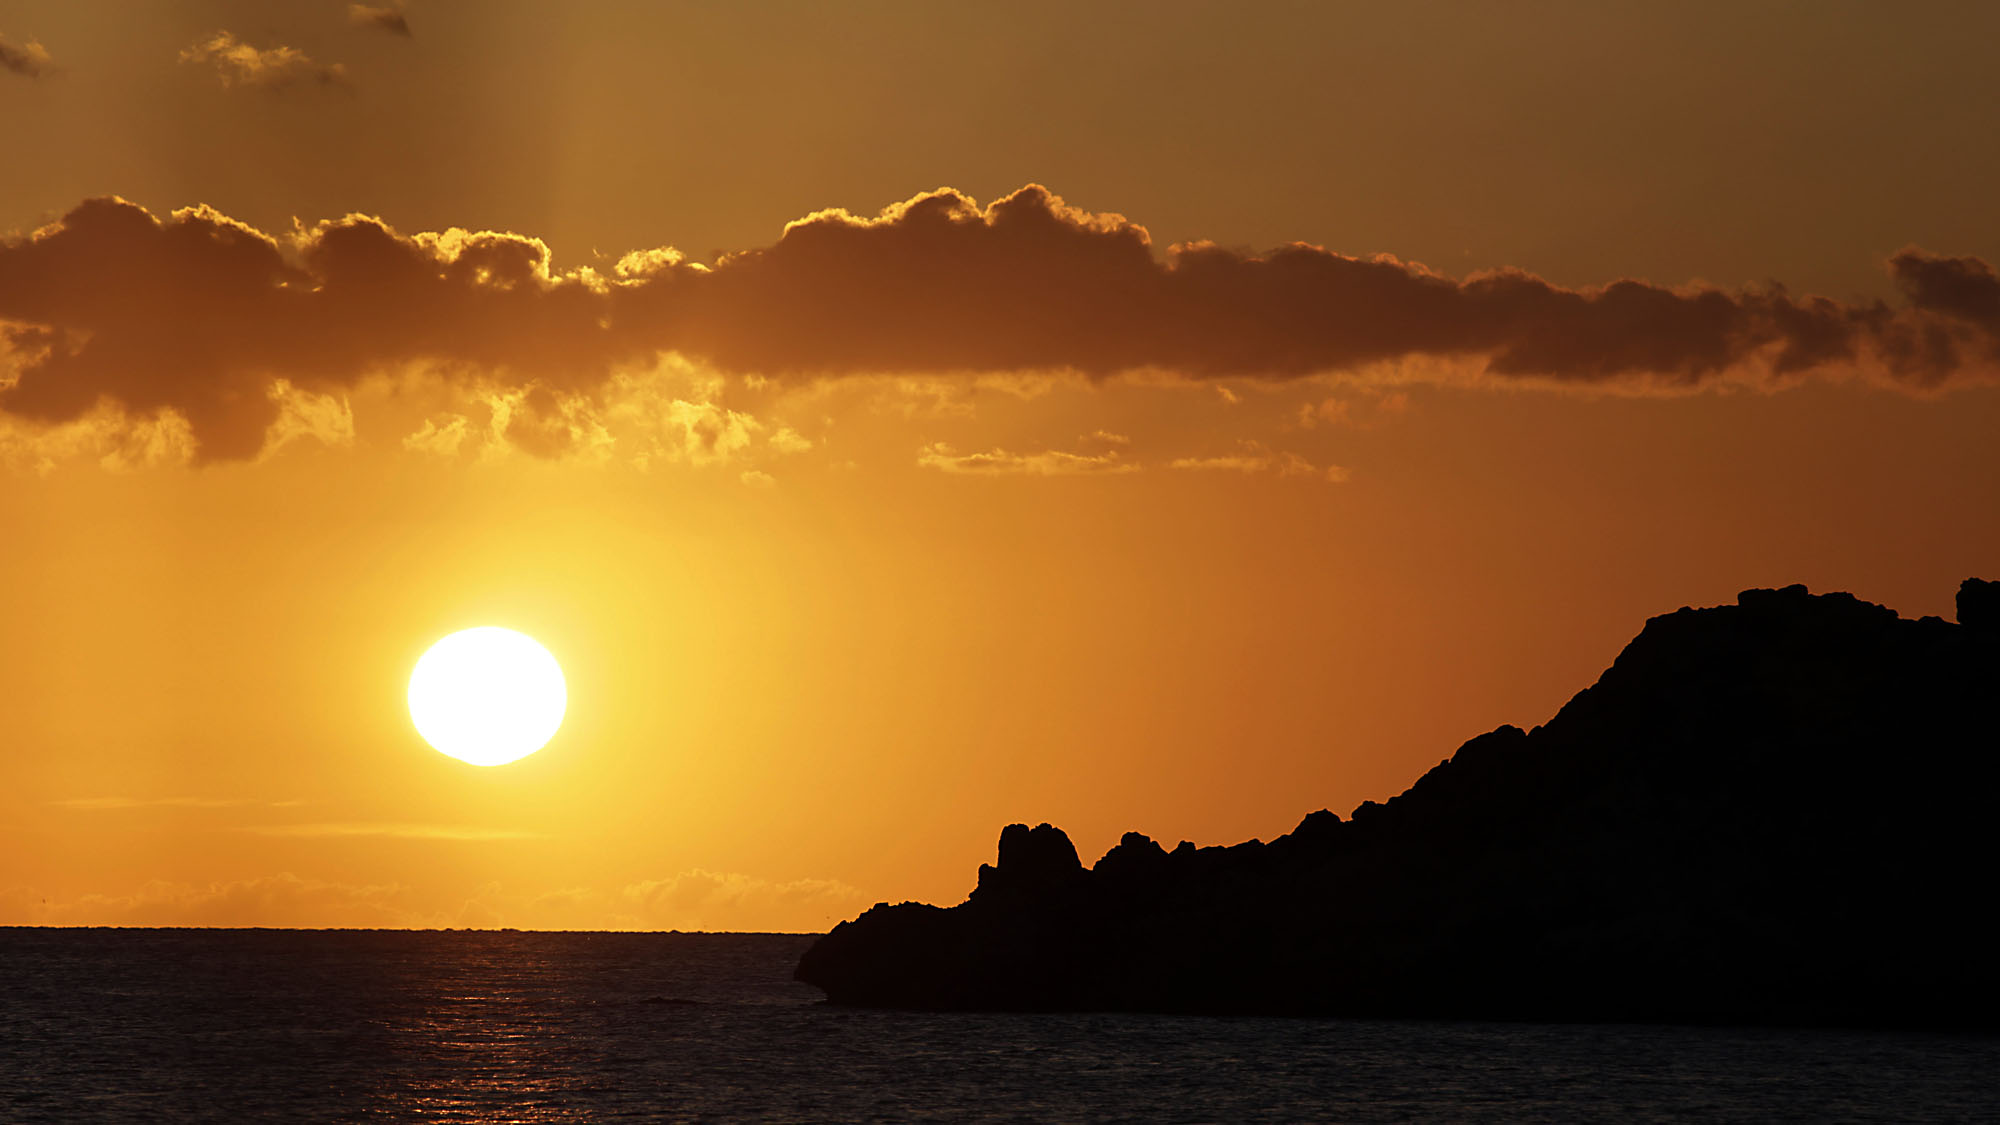 sunset cala dhort